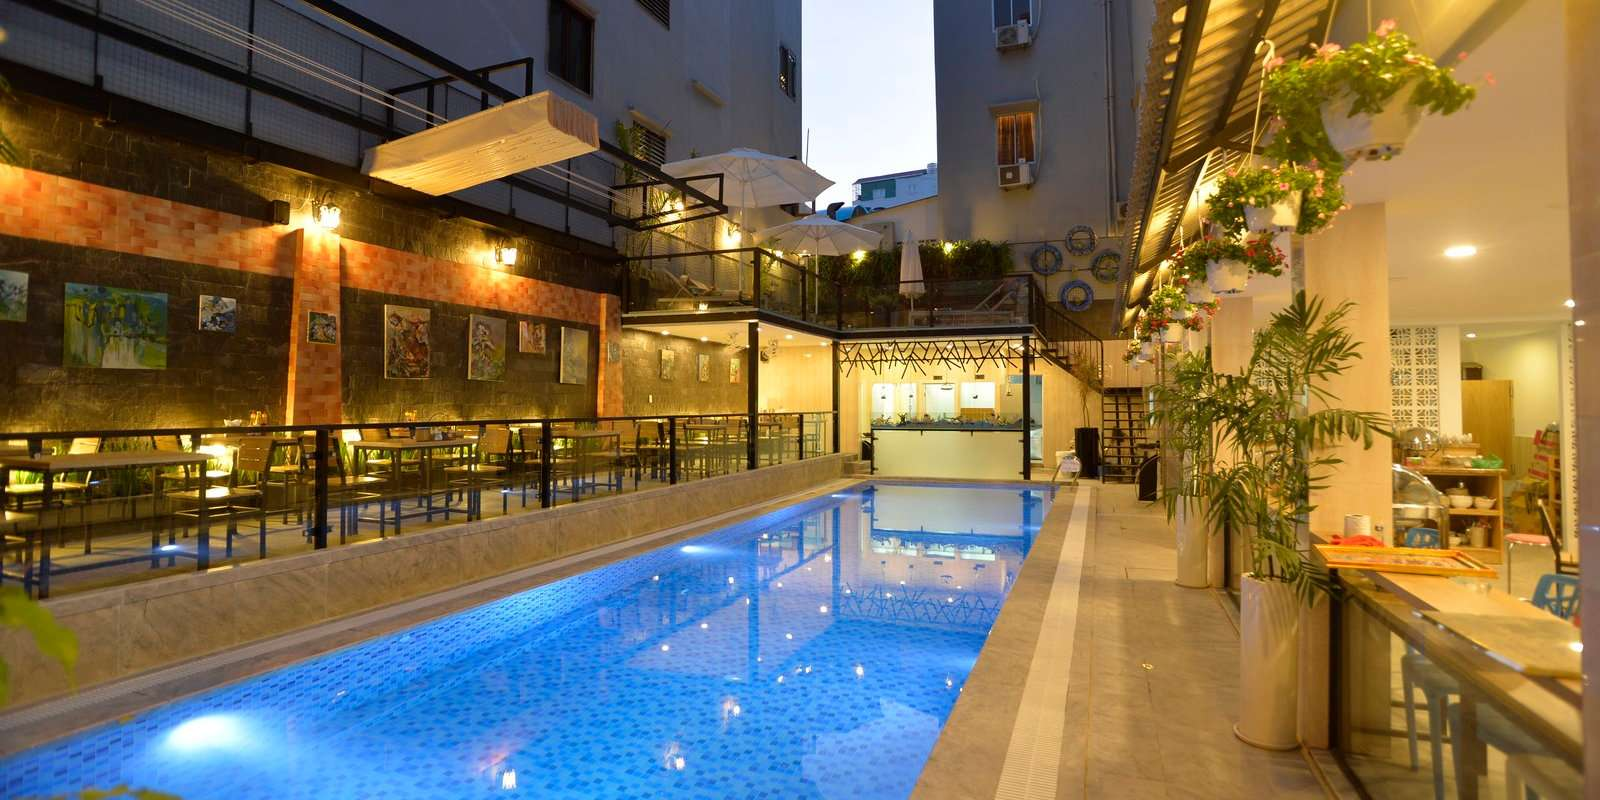 The Beautiful Saigon Boutique Hotel is a lovely mid range hotel that is very welcoming to LGBT guests